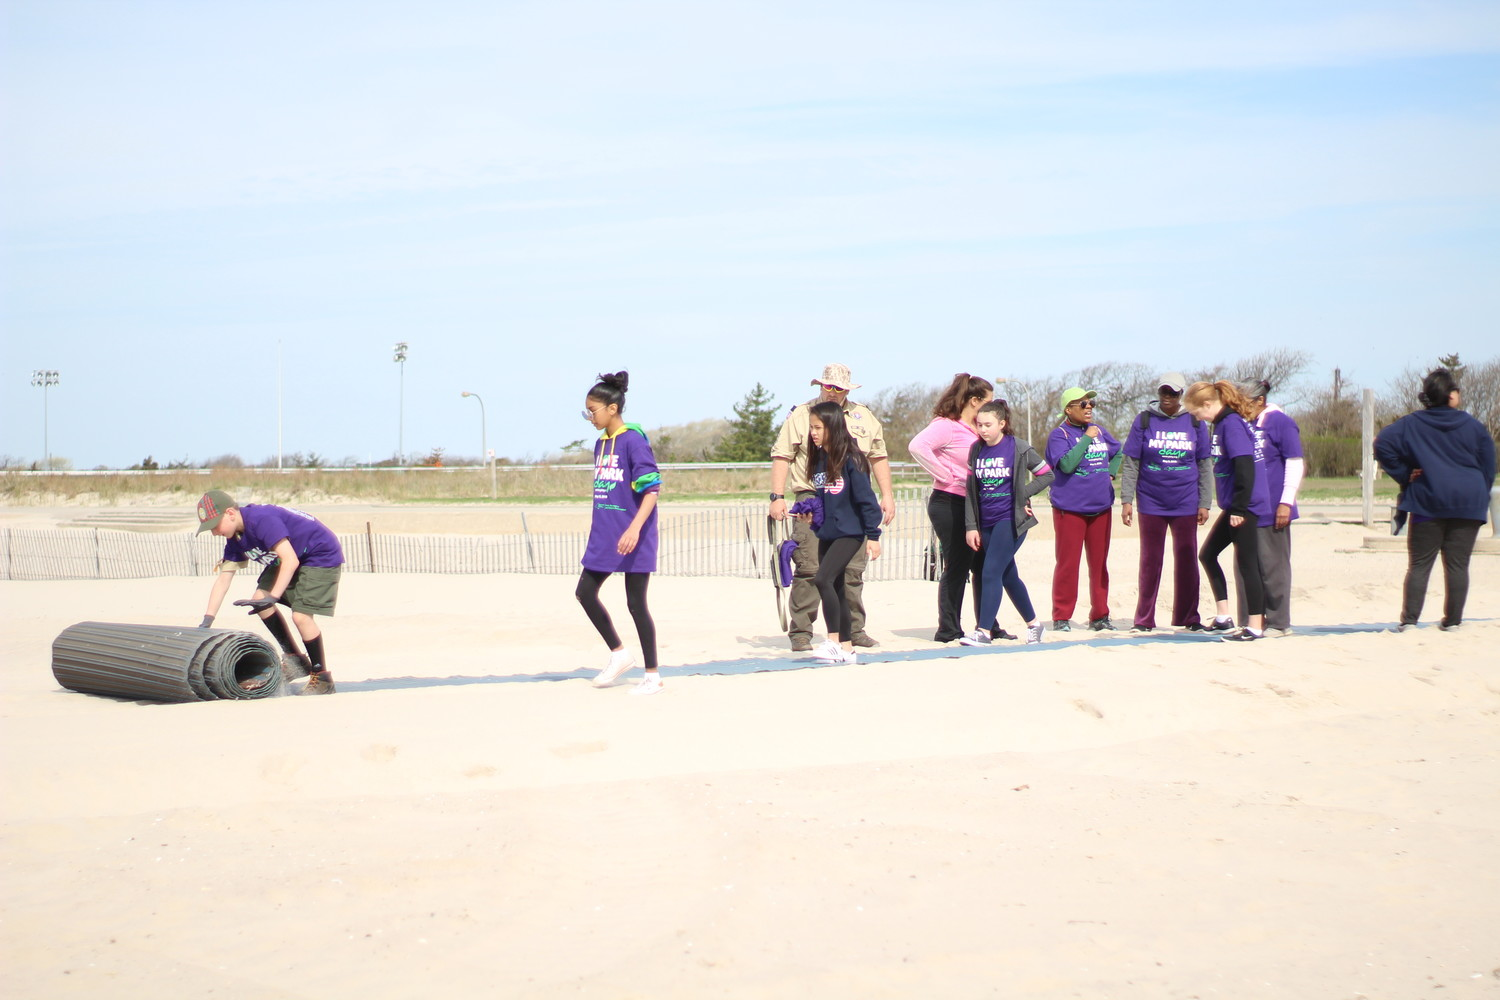 Volunteers at Jones Beach Park rolled out beach access mats, which are used to help disabled beachgoers get closer to the shoreline, as a part of I Love My Park Day.